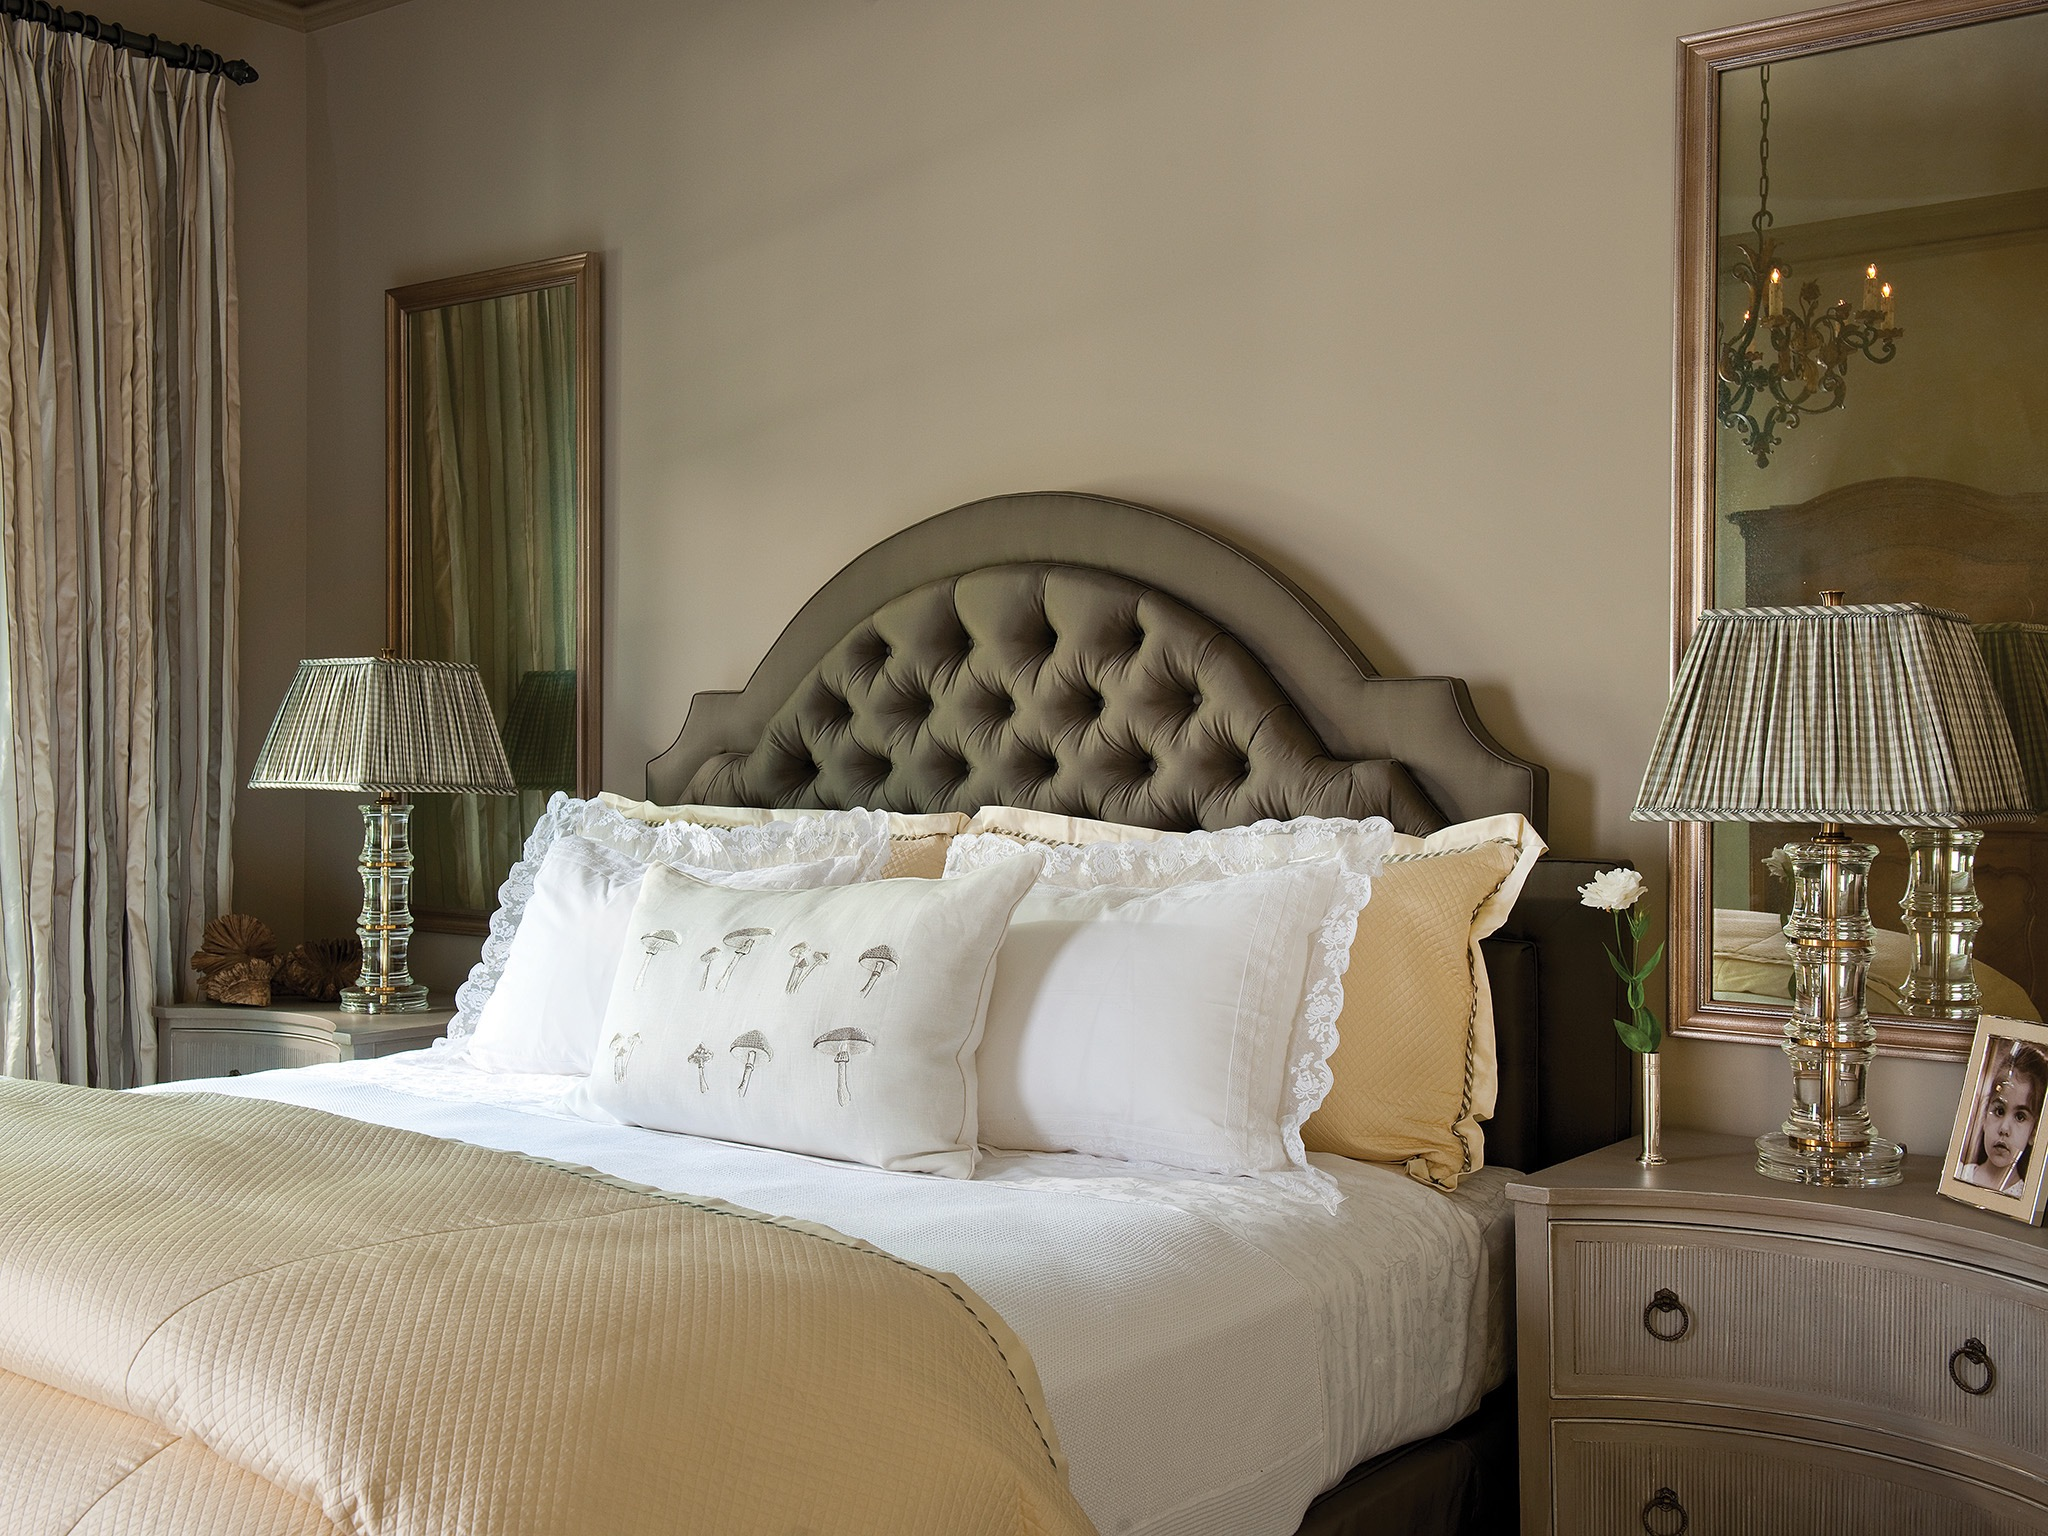 French And Italian Bedroom Decor Style (Image 5 of 12)